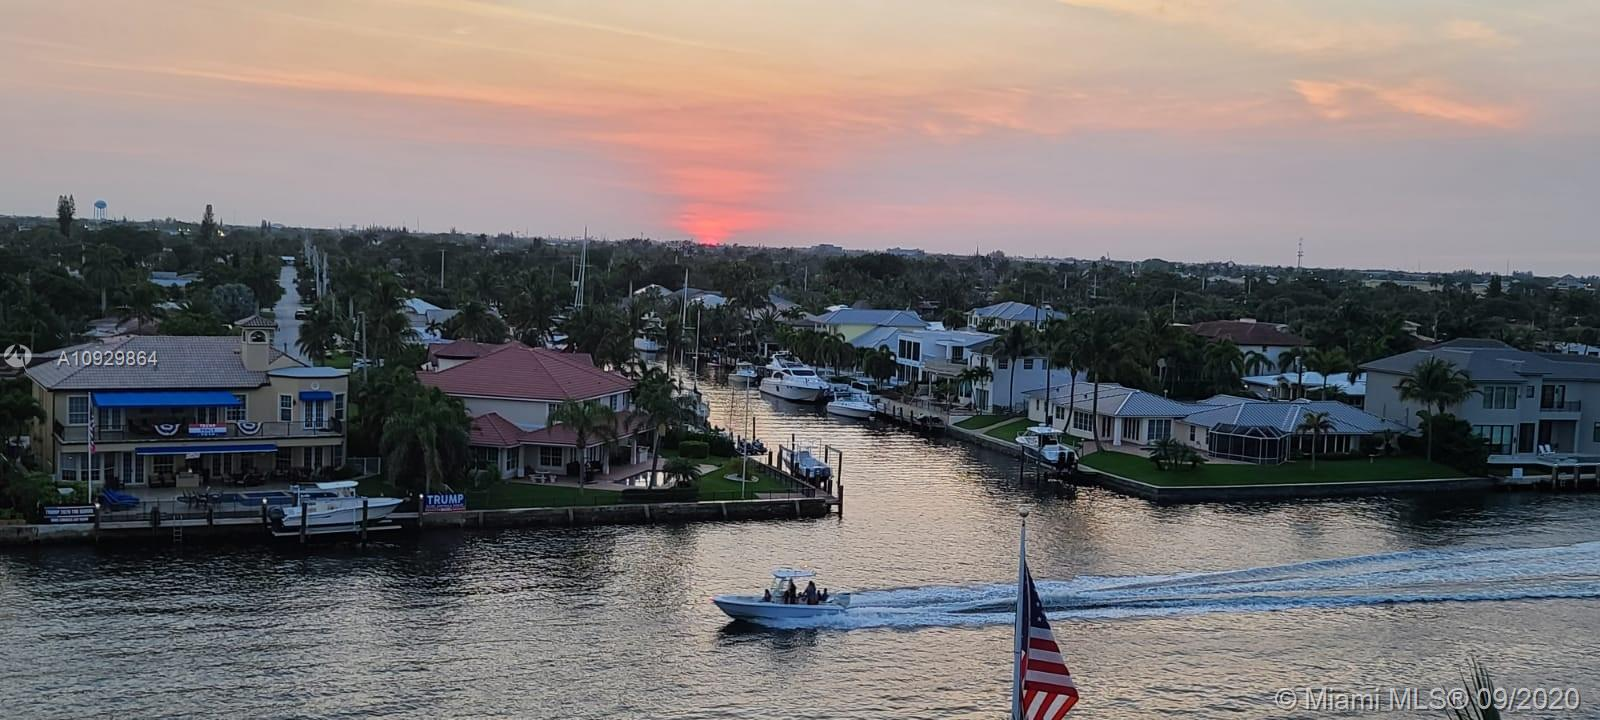 Completely renovated boutique style condo, covered parking, low HOA. Located on the Intercoastal, steps to the beach, Deerfield pier, popular restaurants. The whole building had concrete restoration with multiple upgrades, new Veranda improvements. Remolded Kitchen & Bathrooms. Master bathroom has a built-in wet sauna & guest bathroom has 6 jet Jacuzzi. Shades of Emerald granite kitchen counter top. Custom built kitchen cabinets. Extra thick/insulated German faux wood laminate flooring. Matching faux wood porcelain tiles on the Veranda. LAN cable installed under flooring, master bedroom custom wood armoire with desktop space and built in TV space. 2 walk-in closets. Heated pool. Views East to the ocean and West on the Intracoastal with scenic sunsets. Bicycle parking area.